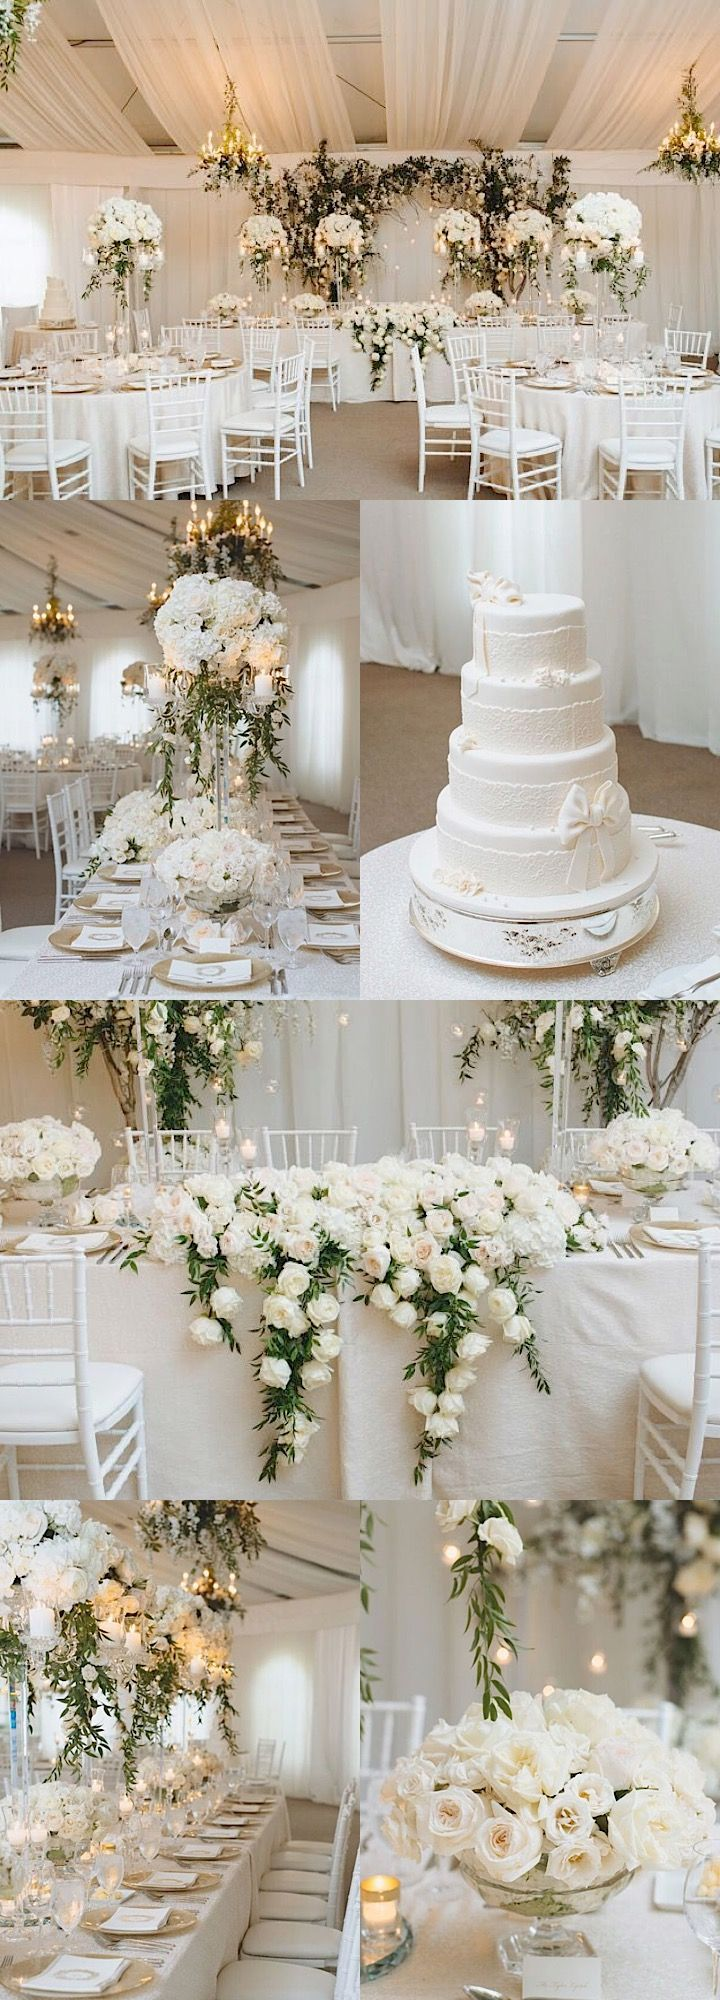 87 best images about Bride  Groom table set up on